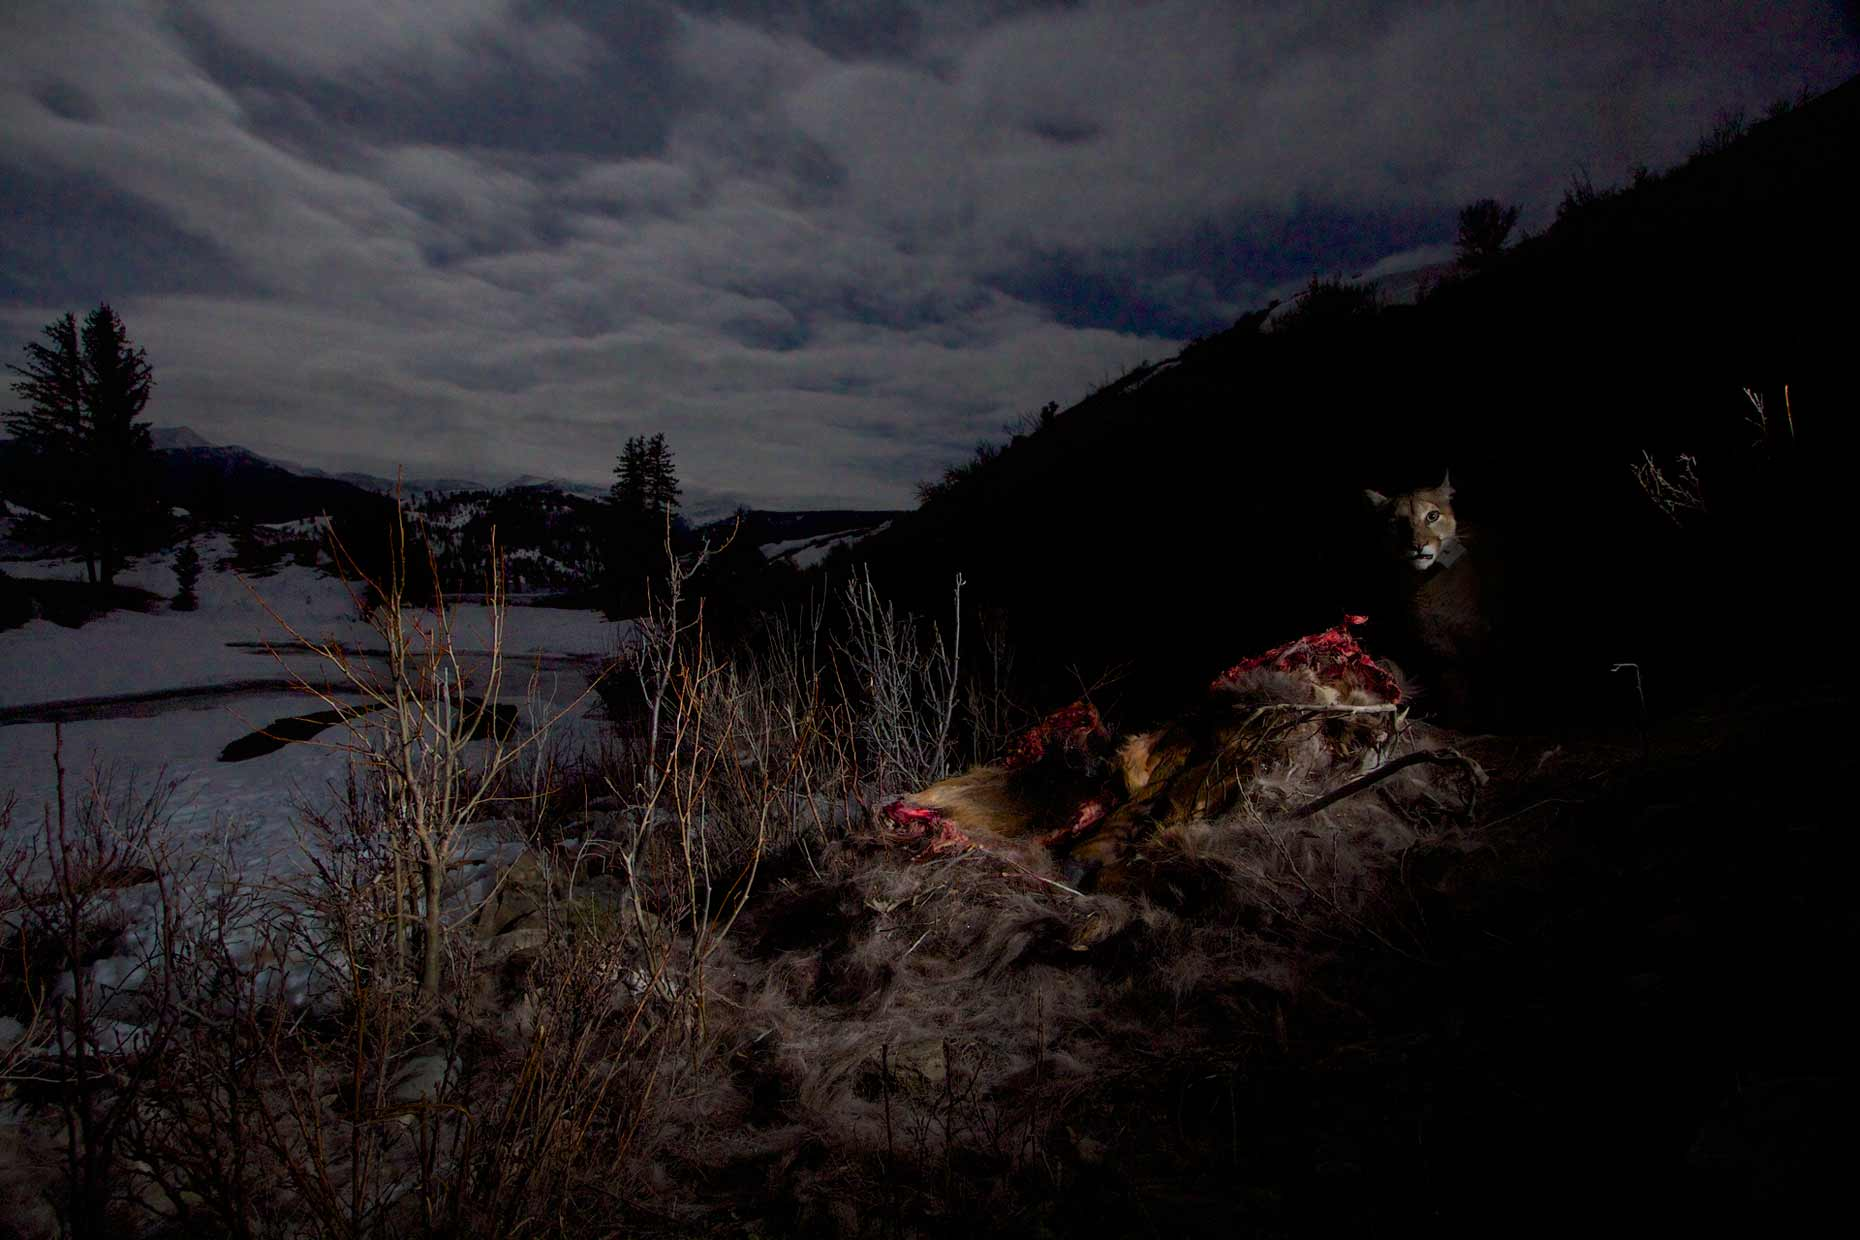 Cougar on an elk kill in the moonlight, Teton National Forest